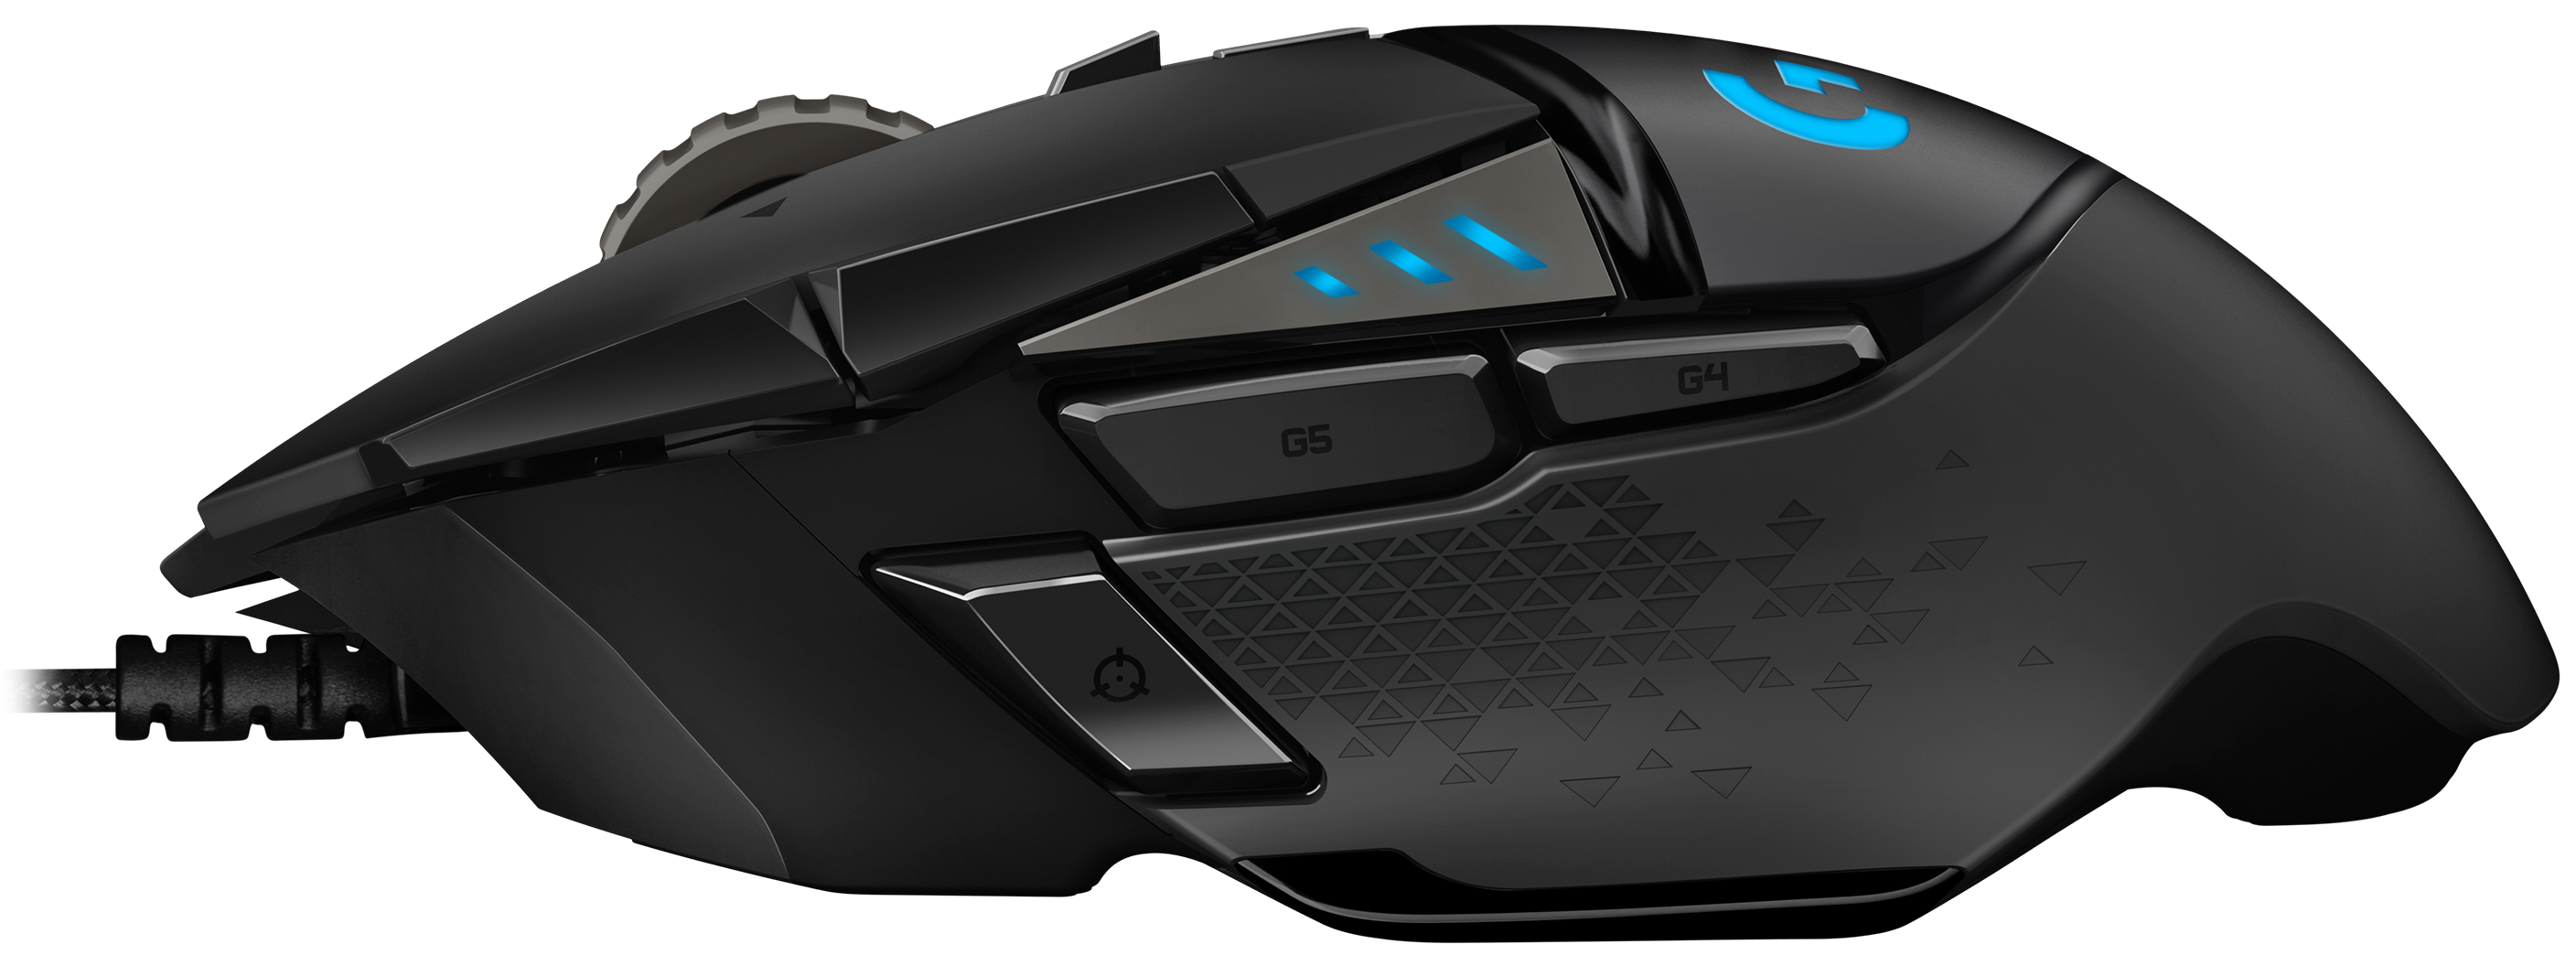 62f6c9d6959 Logitech G502 HERO High Performance Gaming Mouse